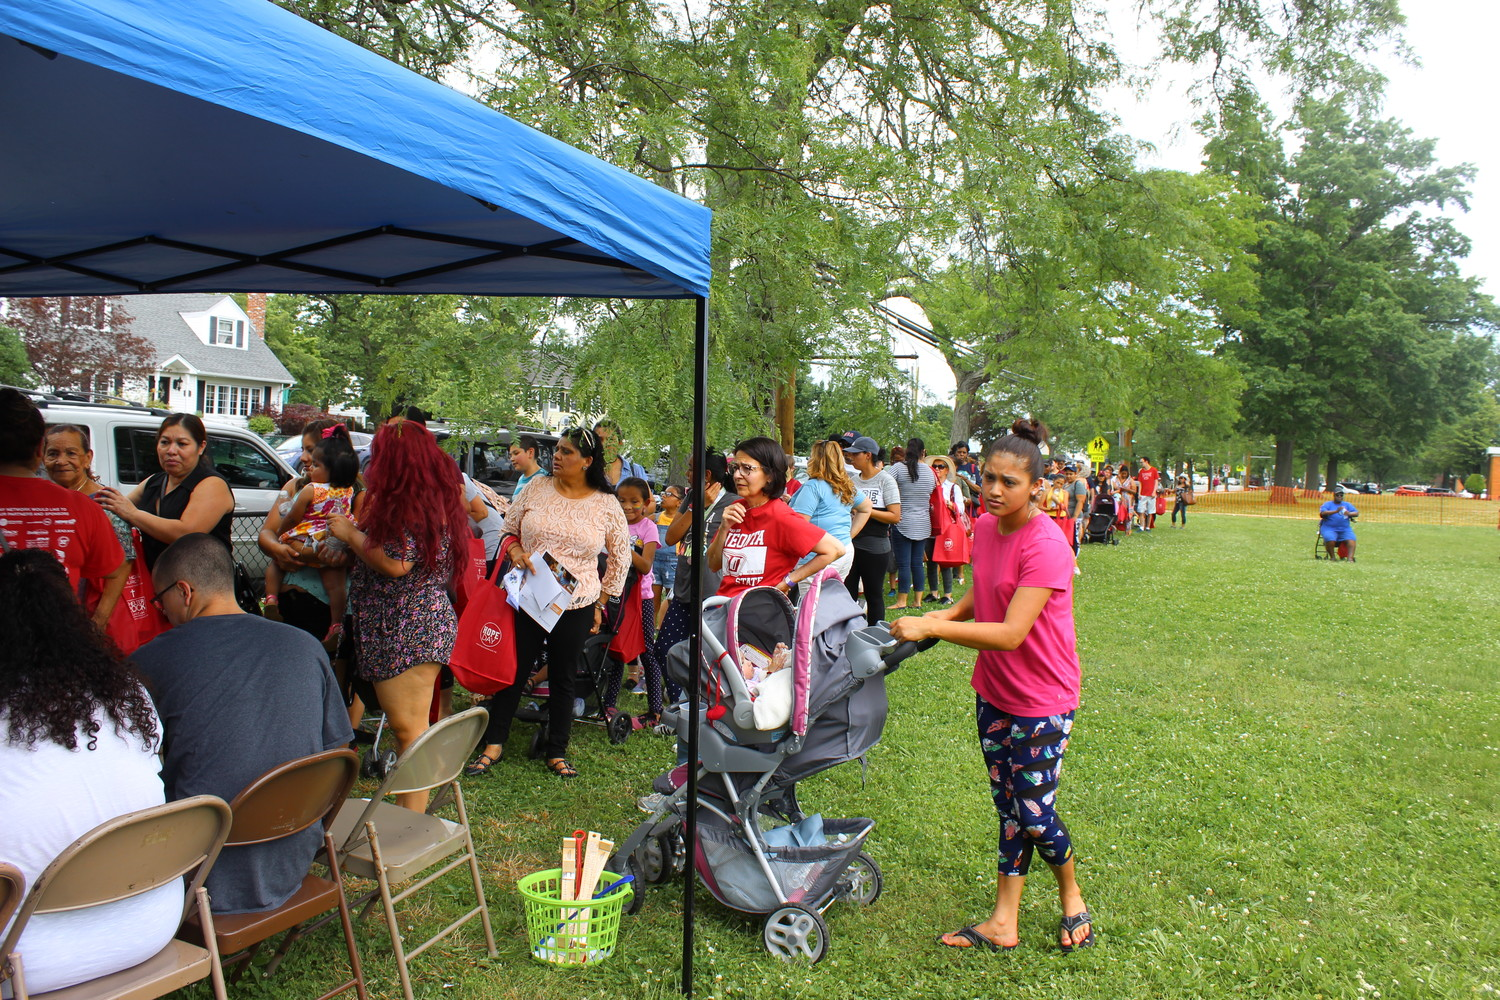 Dozens of residents from East Meadow and Westbury lined up to participate in Hope Day, hosted by New Hope Church and Shelter Rock Church and held this year at Bowling Green Elementary School in Westbury.